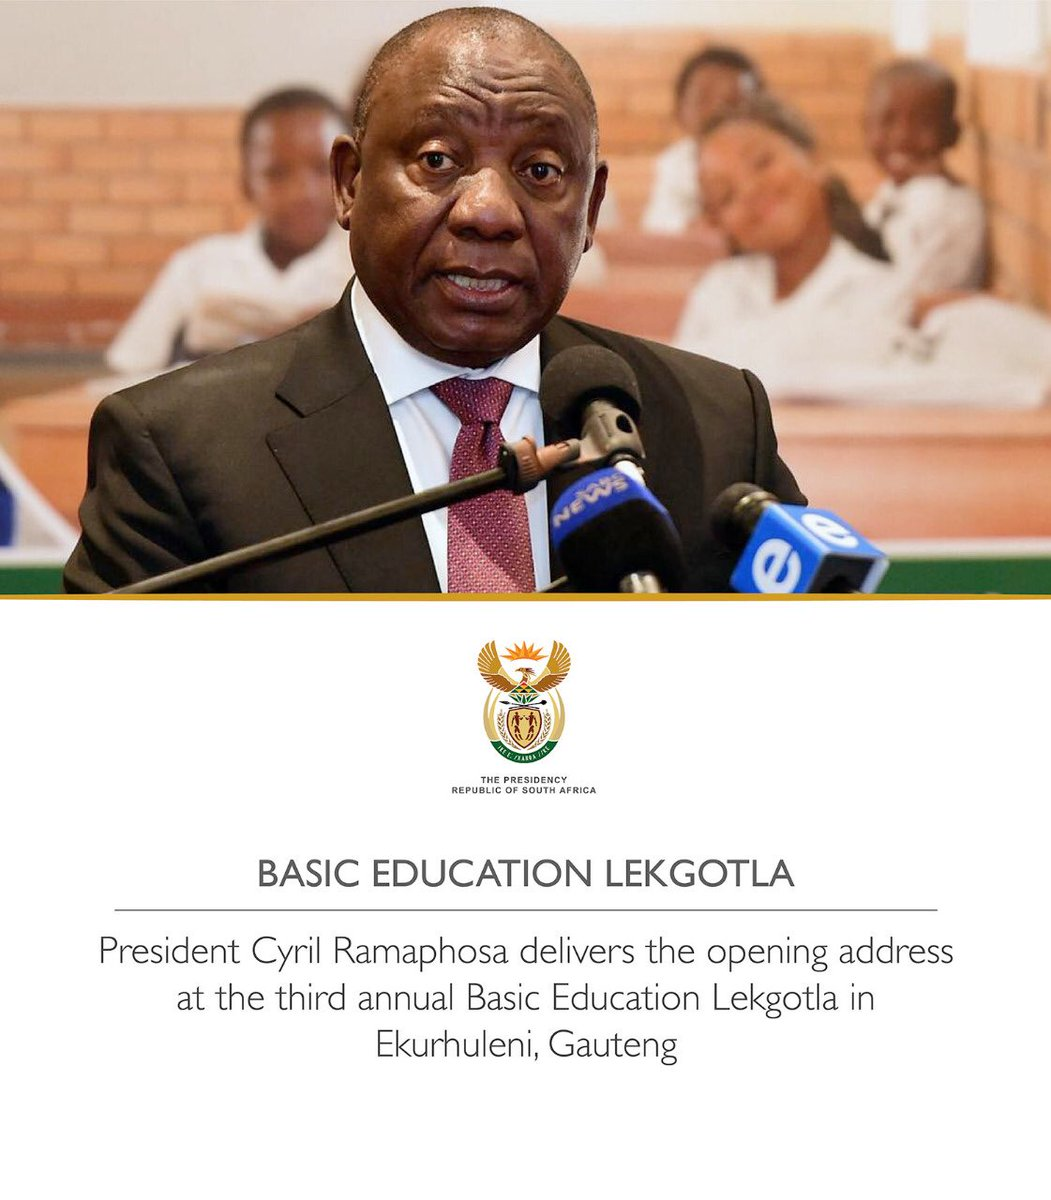 President @DPRamaphosa will this morning deliver the opening address at the 3rd annual Basic Education Lekgotla in Ekurhuleni, Gauteng. The 3-day national event brings together provincial departments, unions, SGBs, learner organisations, NGOs, academics & other stakeholders.